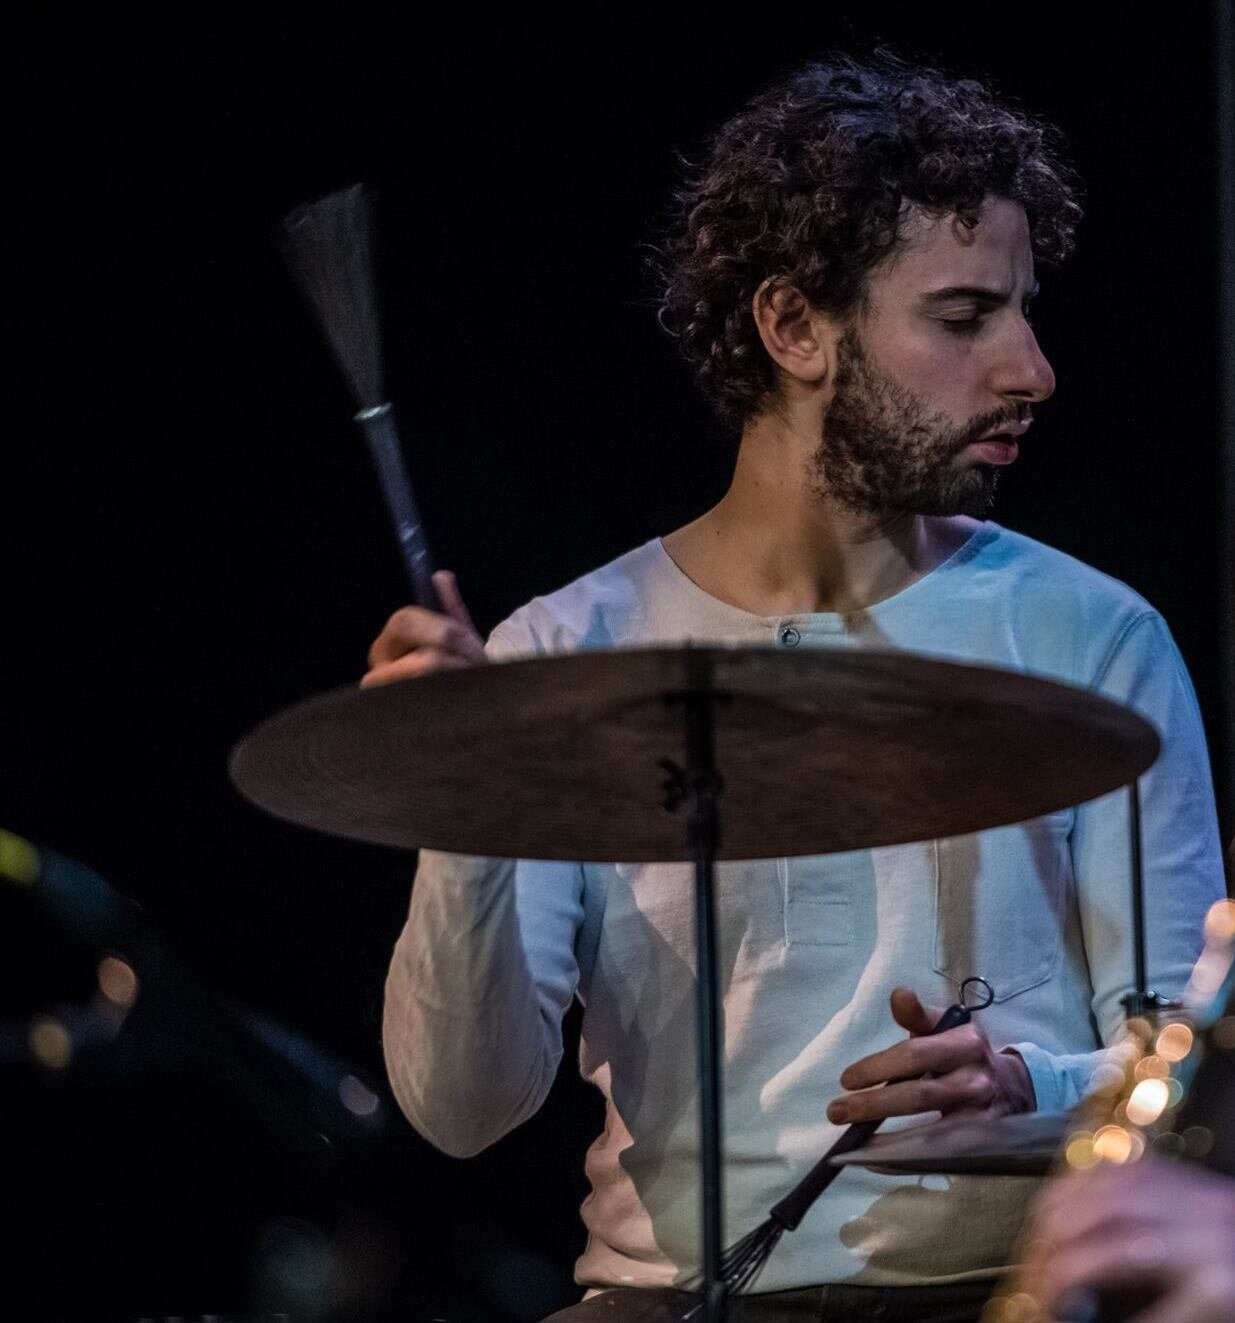 Simon Roth - Percussion